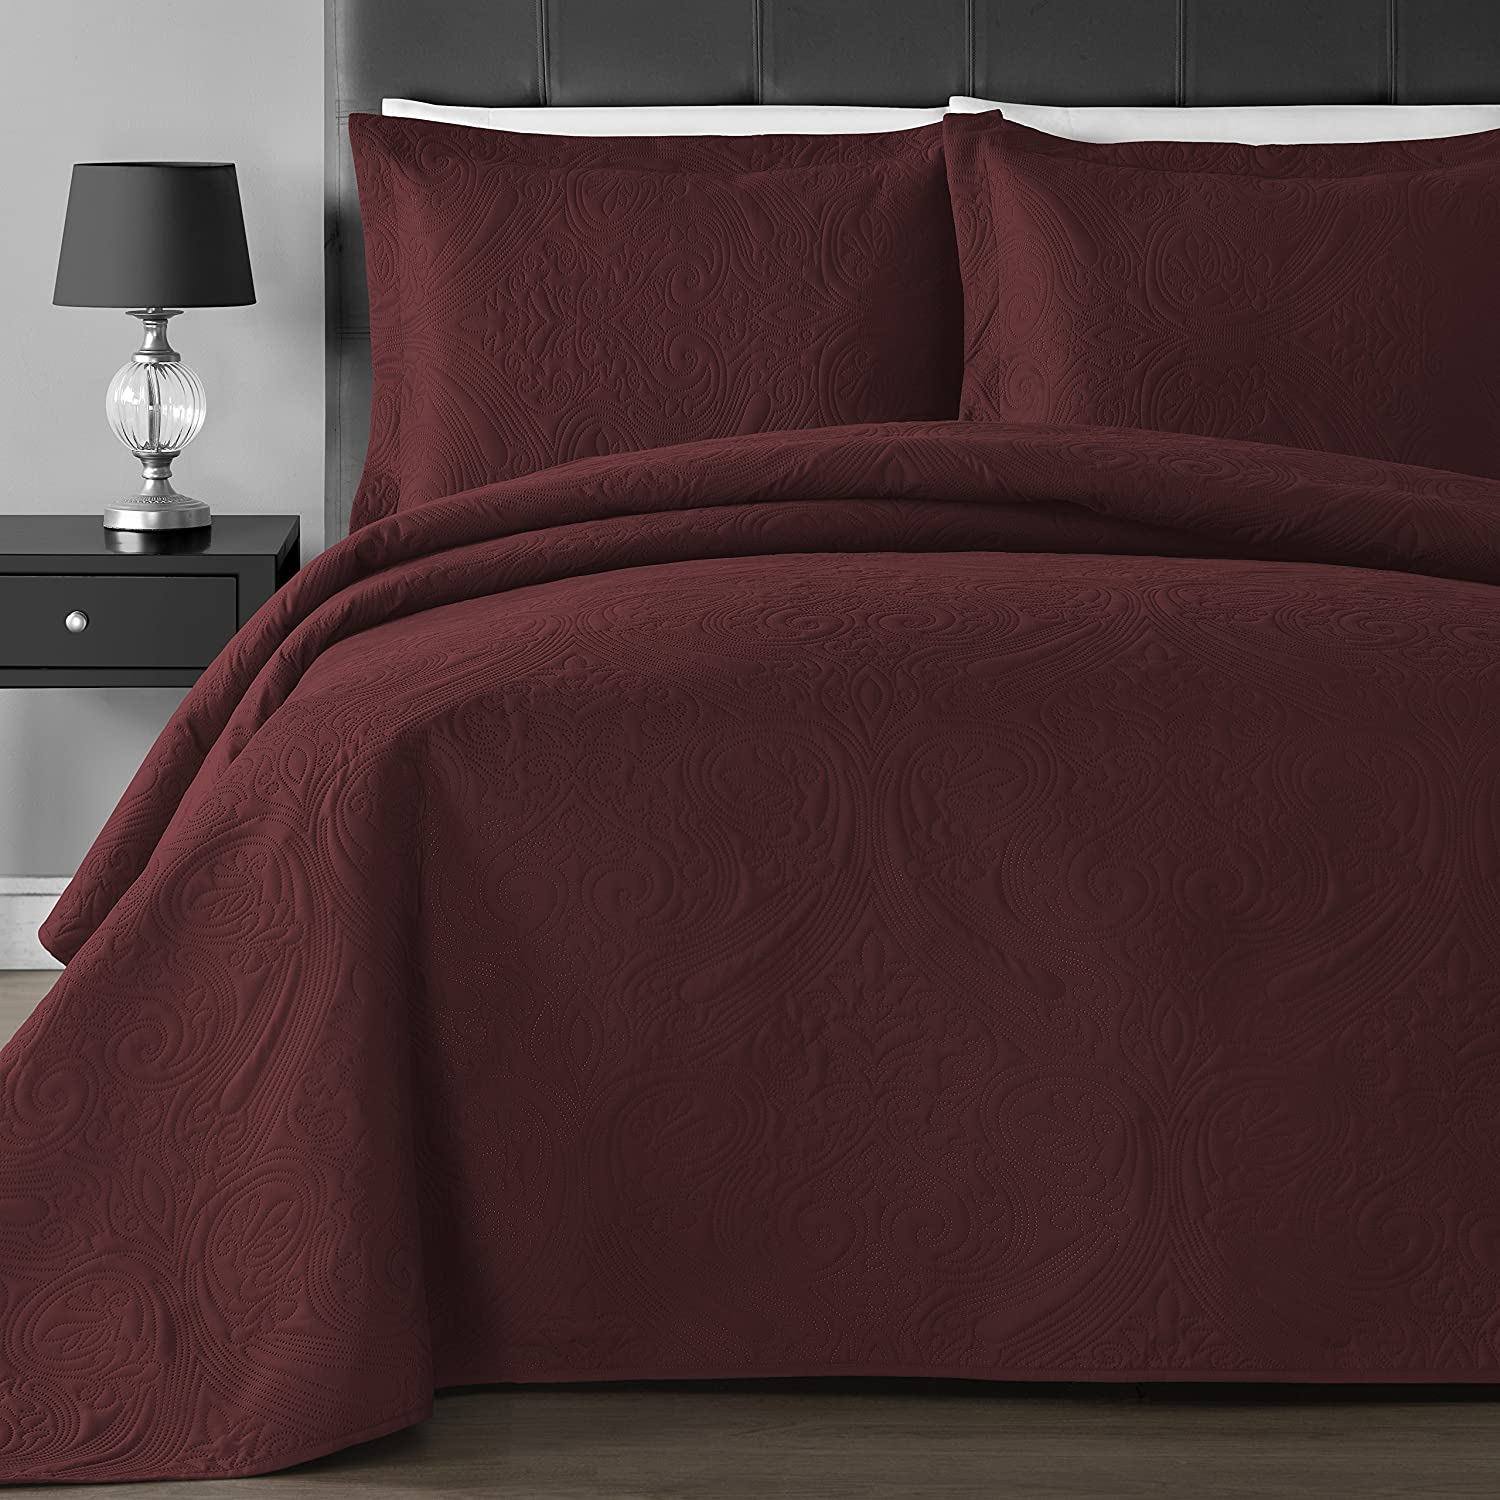 Comfy Bedding Extra Lightweight and Oversized Thermal Pressing Floral 3-piece Coverlet Set (King/Cal King, Burgundy) B06XH9BFTX King/Cal King|バーガンディー バーガンディー King/Cal King